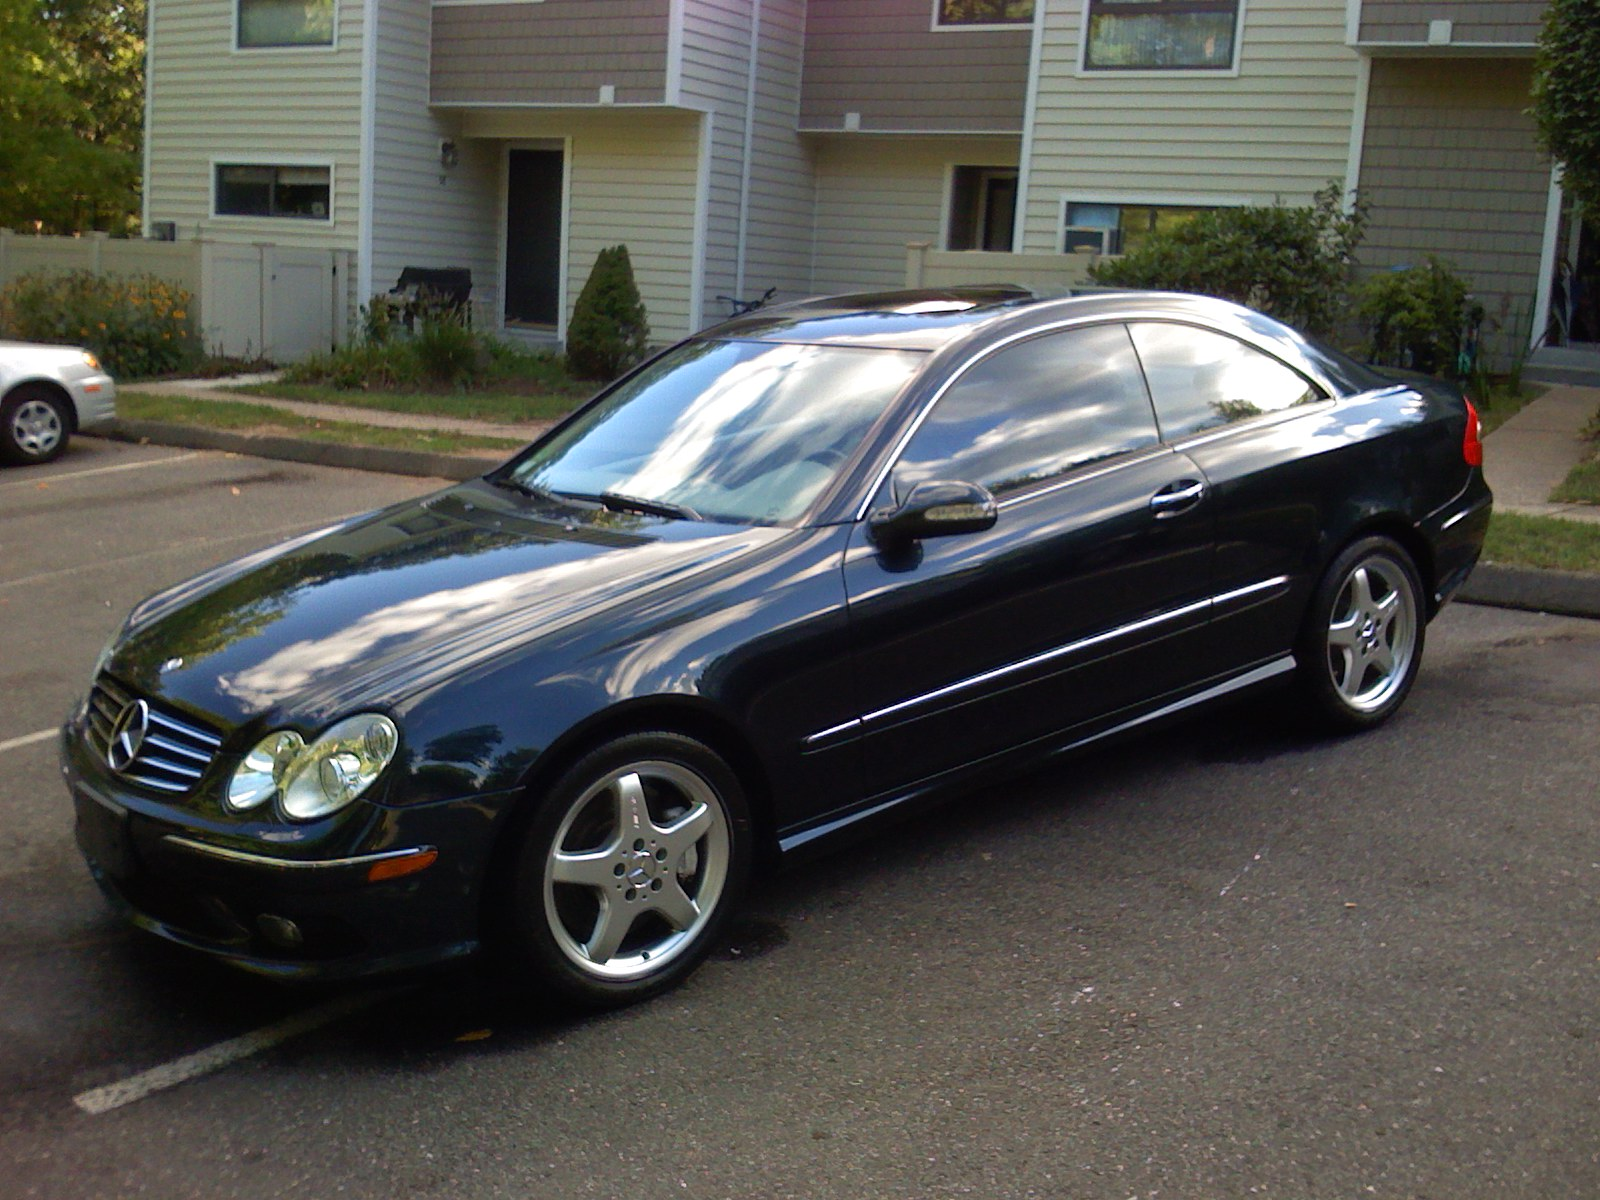 2004 mercedes benz clk class pictures cargurus For2004 Mercedes Benz Clk500 Coupe